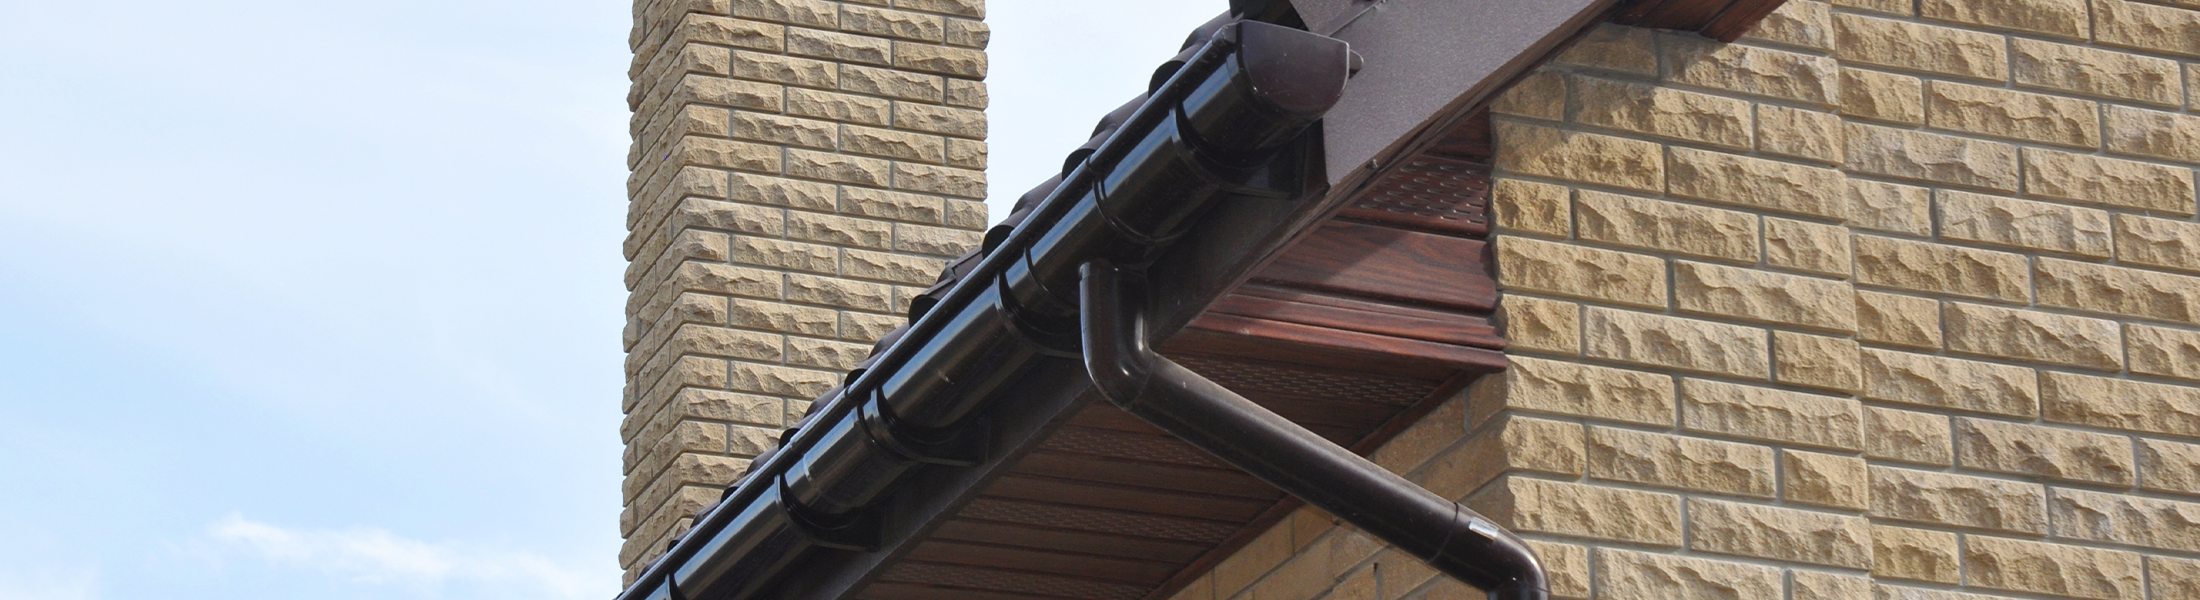 Weatherly Roofing Images